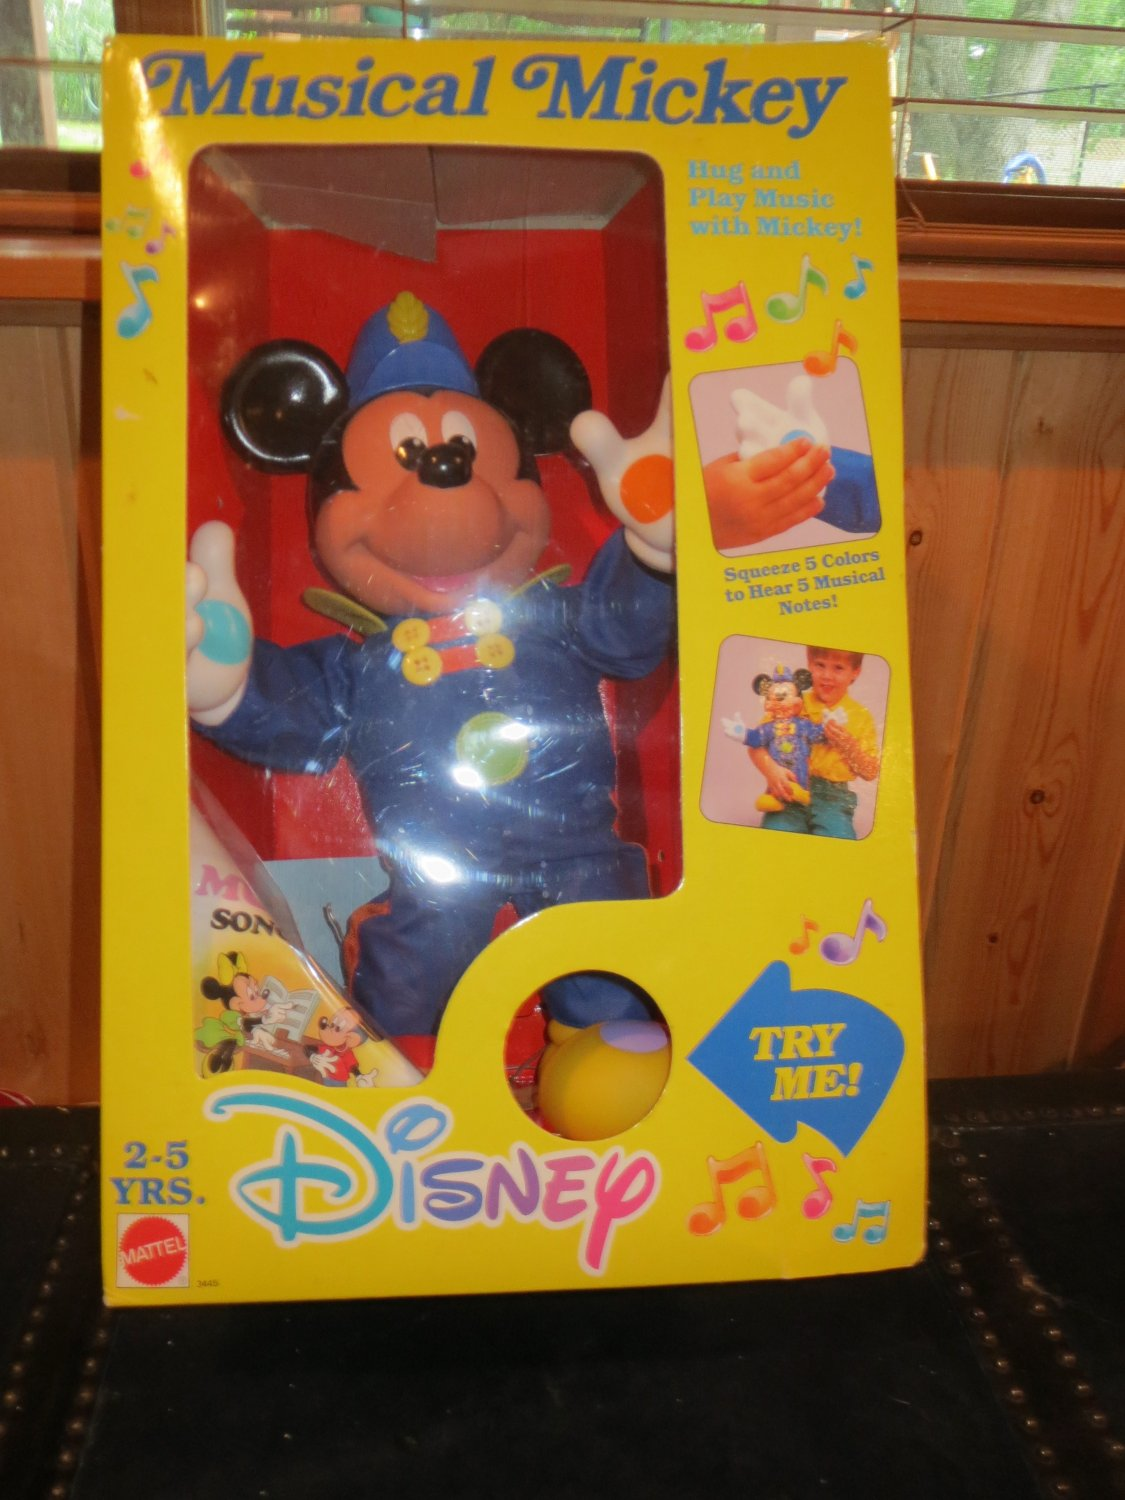 Vintage 1990 Disney Mattel Mickey Mouse Hug and Play Musical Notes